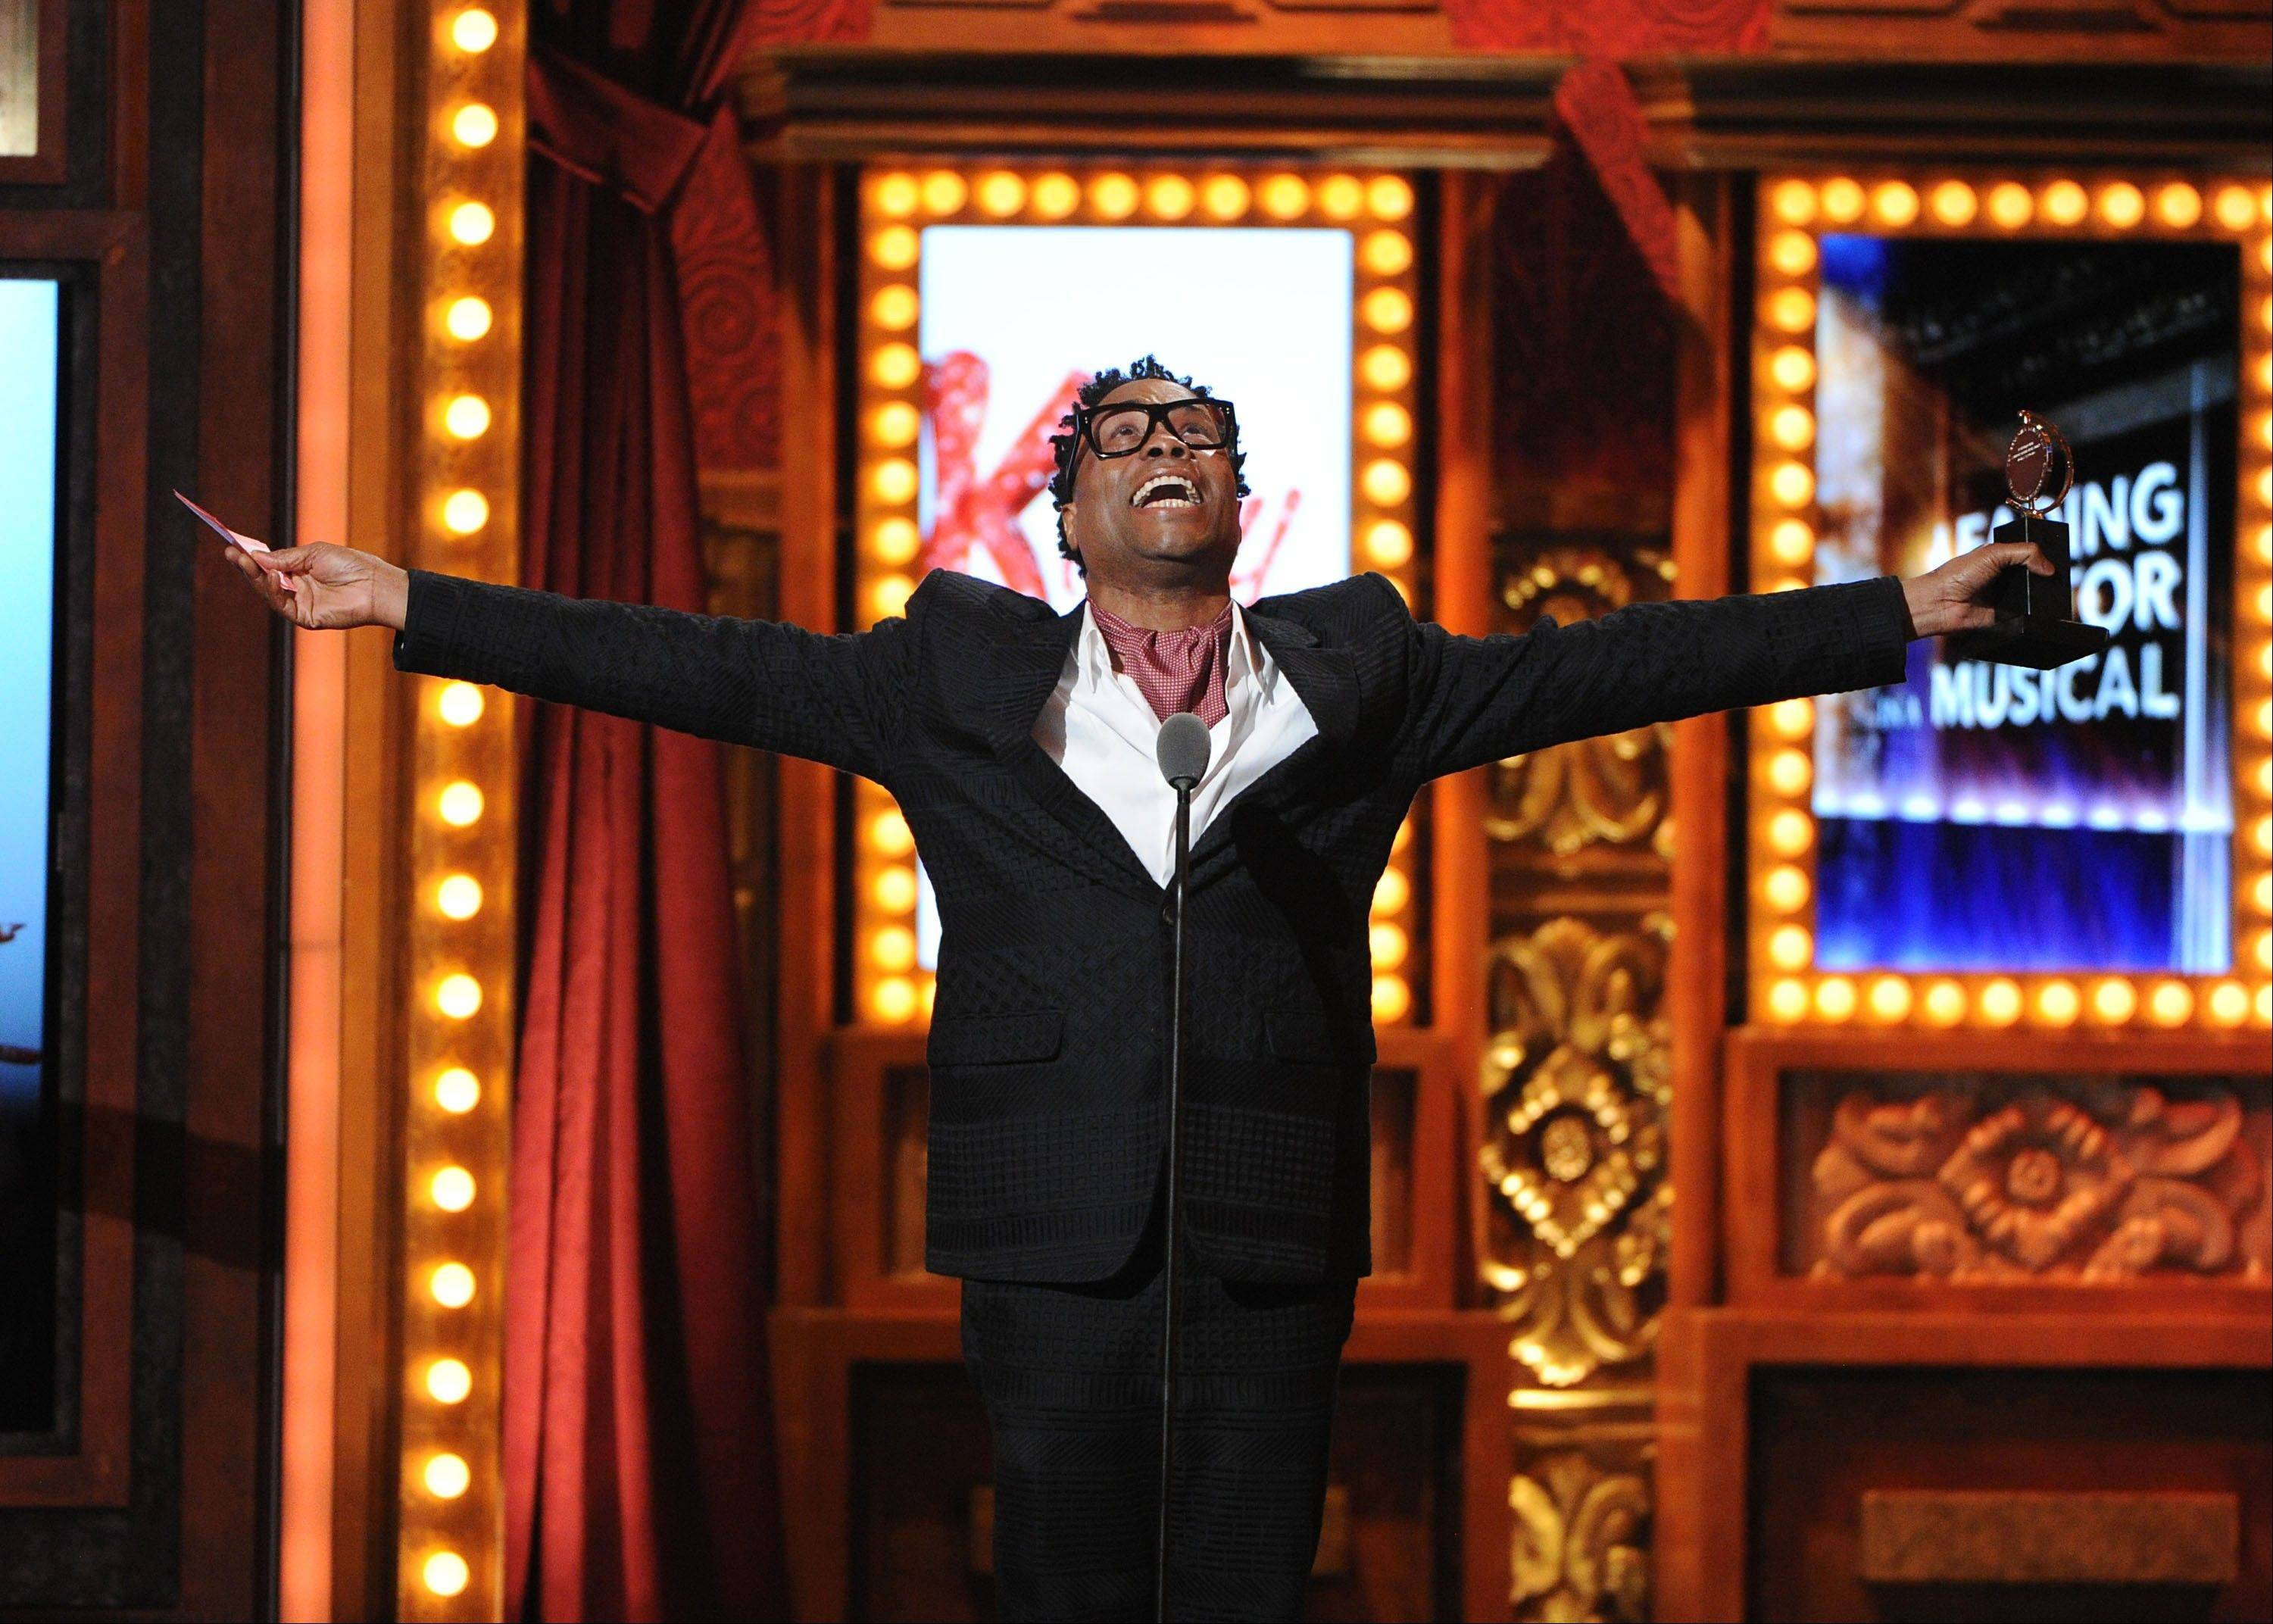 Billy Porter accepts his award for best actor in a musical at the 67th Annual Tony Awards, on Sunday, June 9, 2013 in New York.